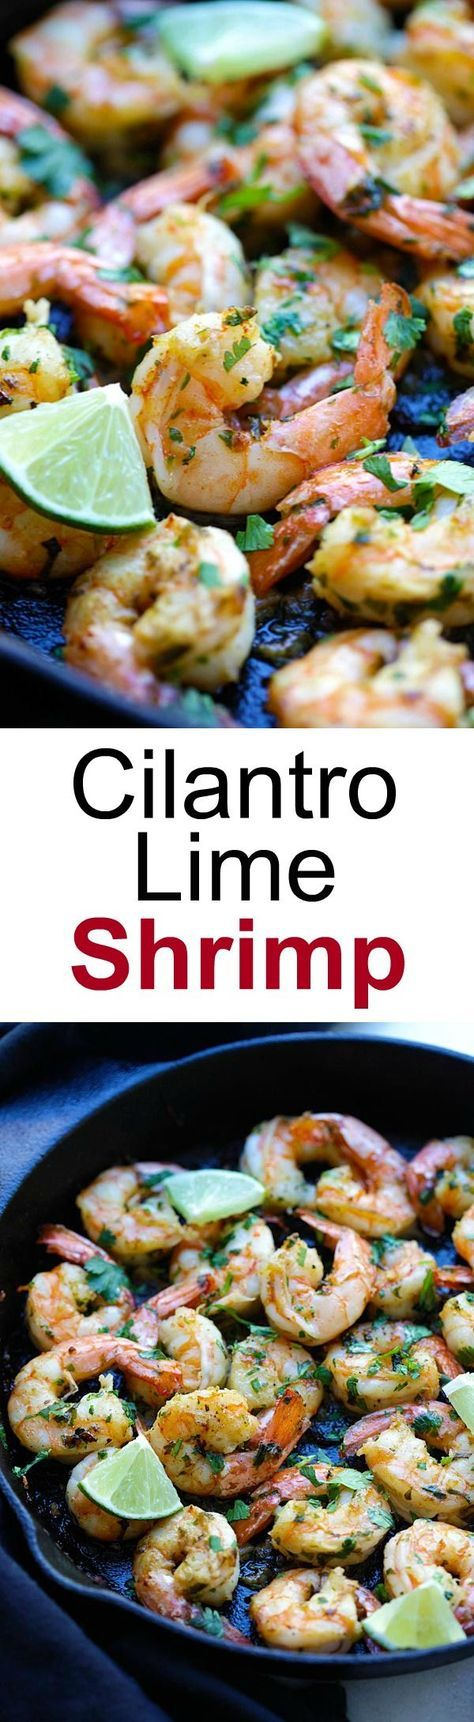 Cilantro Lime Shrimp - best shrimp ever with cilantro, lime & garlic on sizzling skillet. Crazy delicious recipe, takes 15 mins | http://rasamalaysia.com